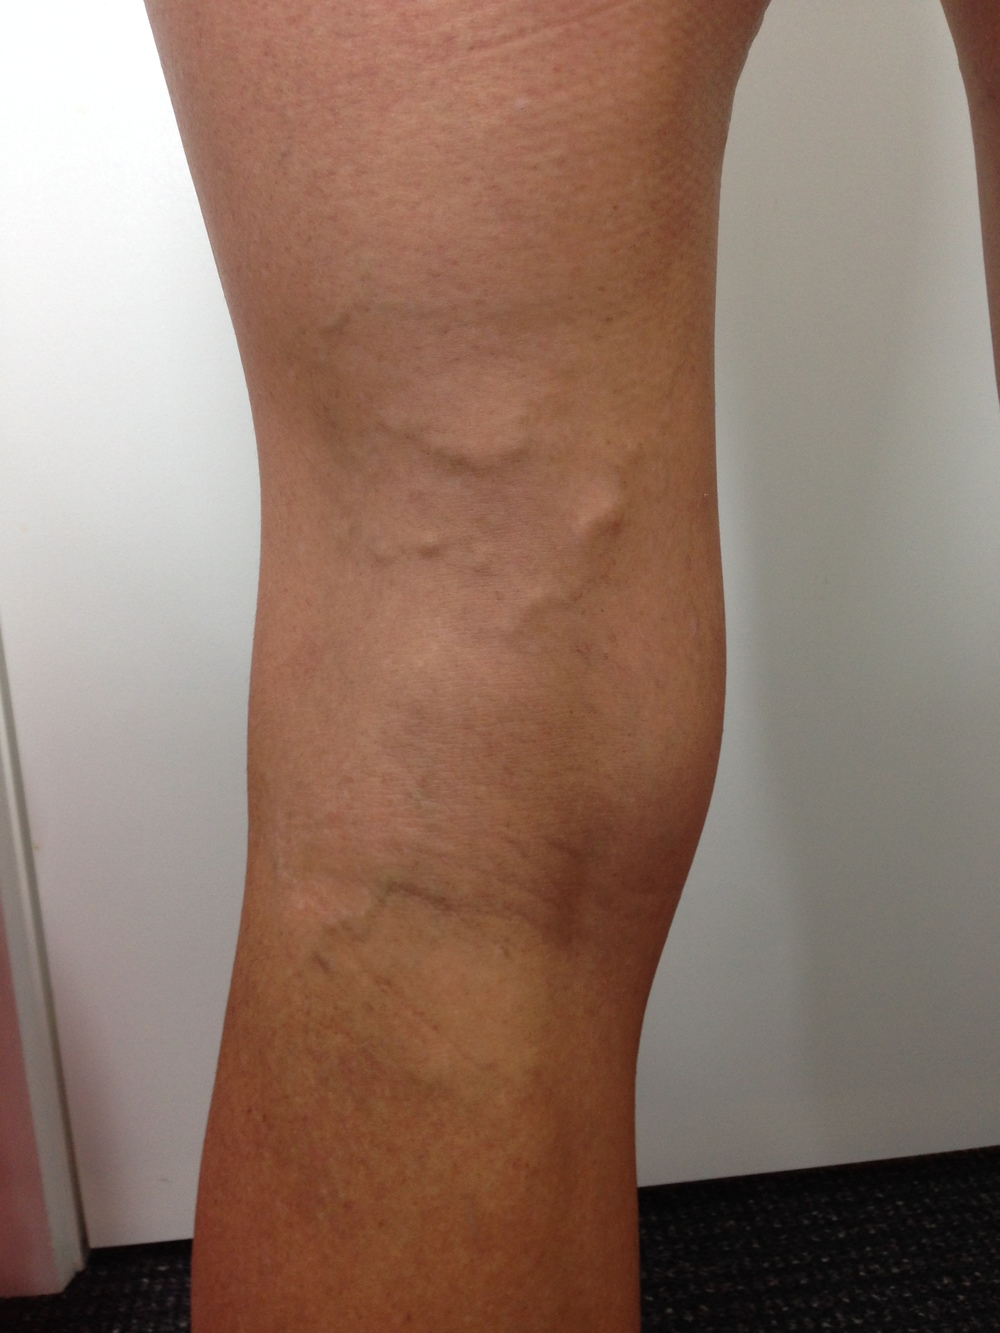 Treatment: Ultrasound Guided Sclerotherapy. Results at 4 months.